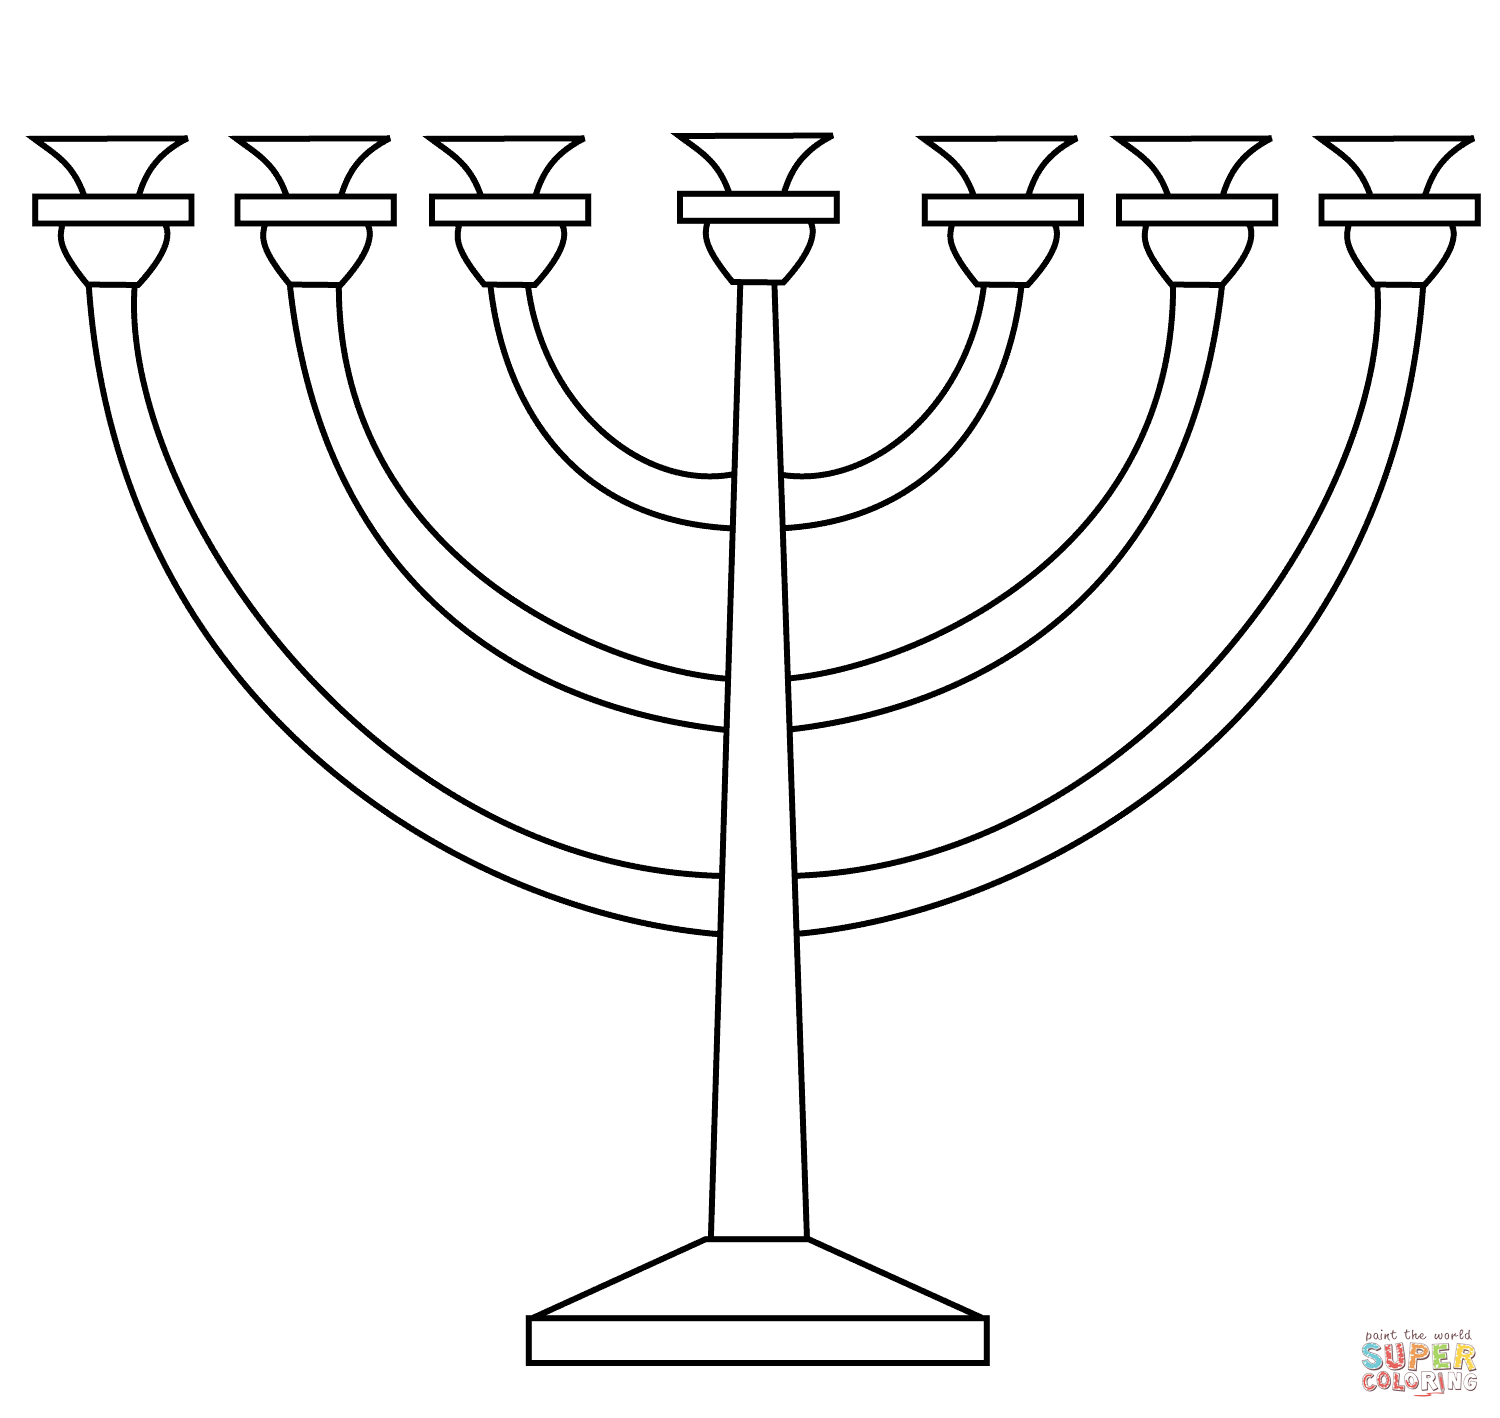 Menorah Free Printable Coloring Pages Free Printable Coloring Pages Hanukkah Crafts Printable Coloring Pages